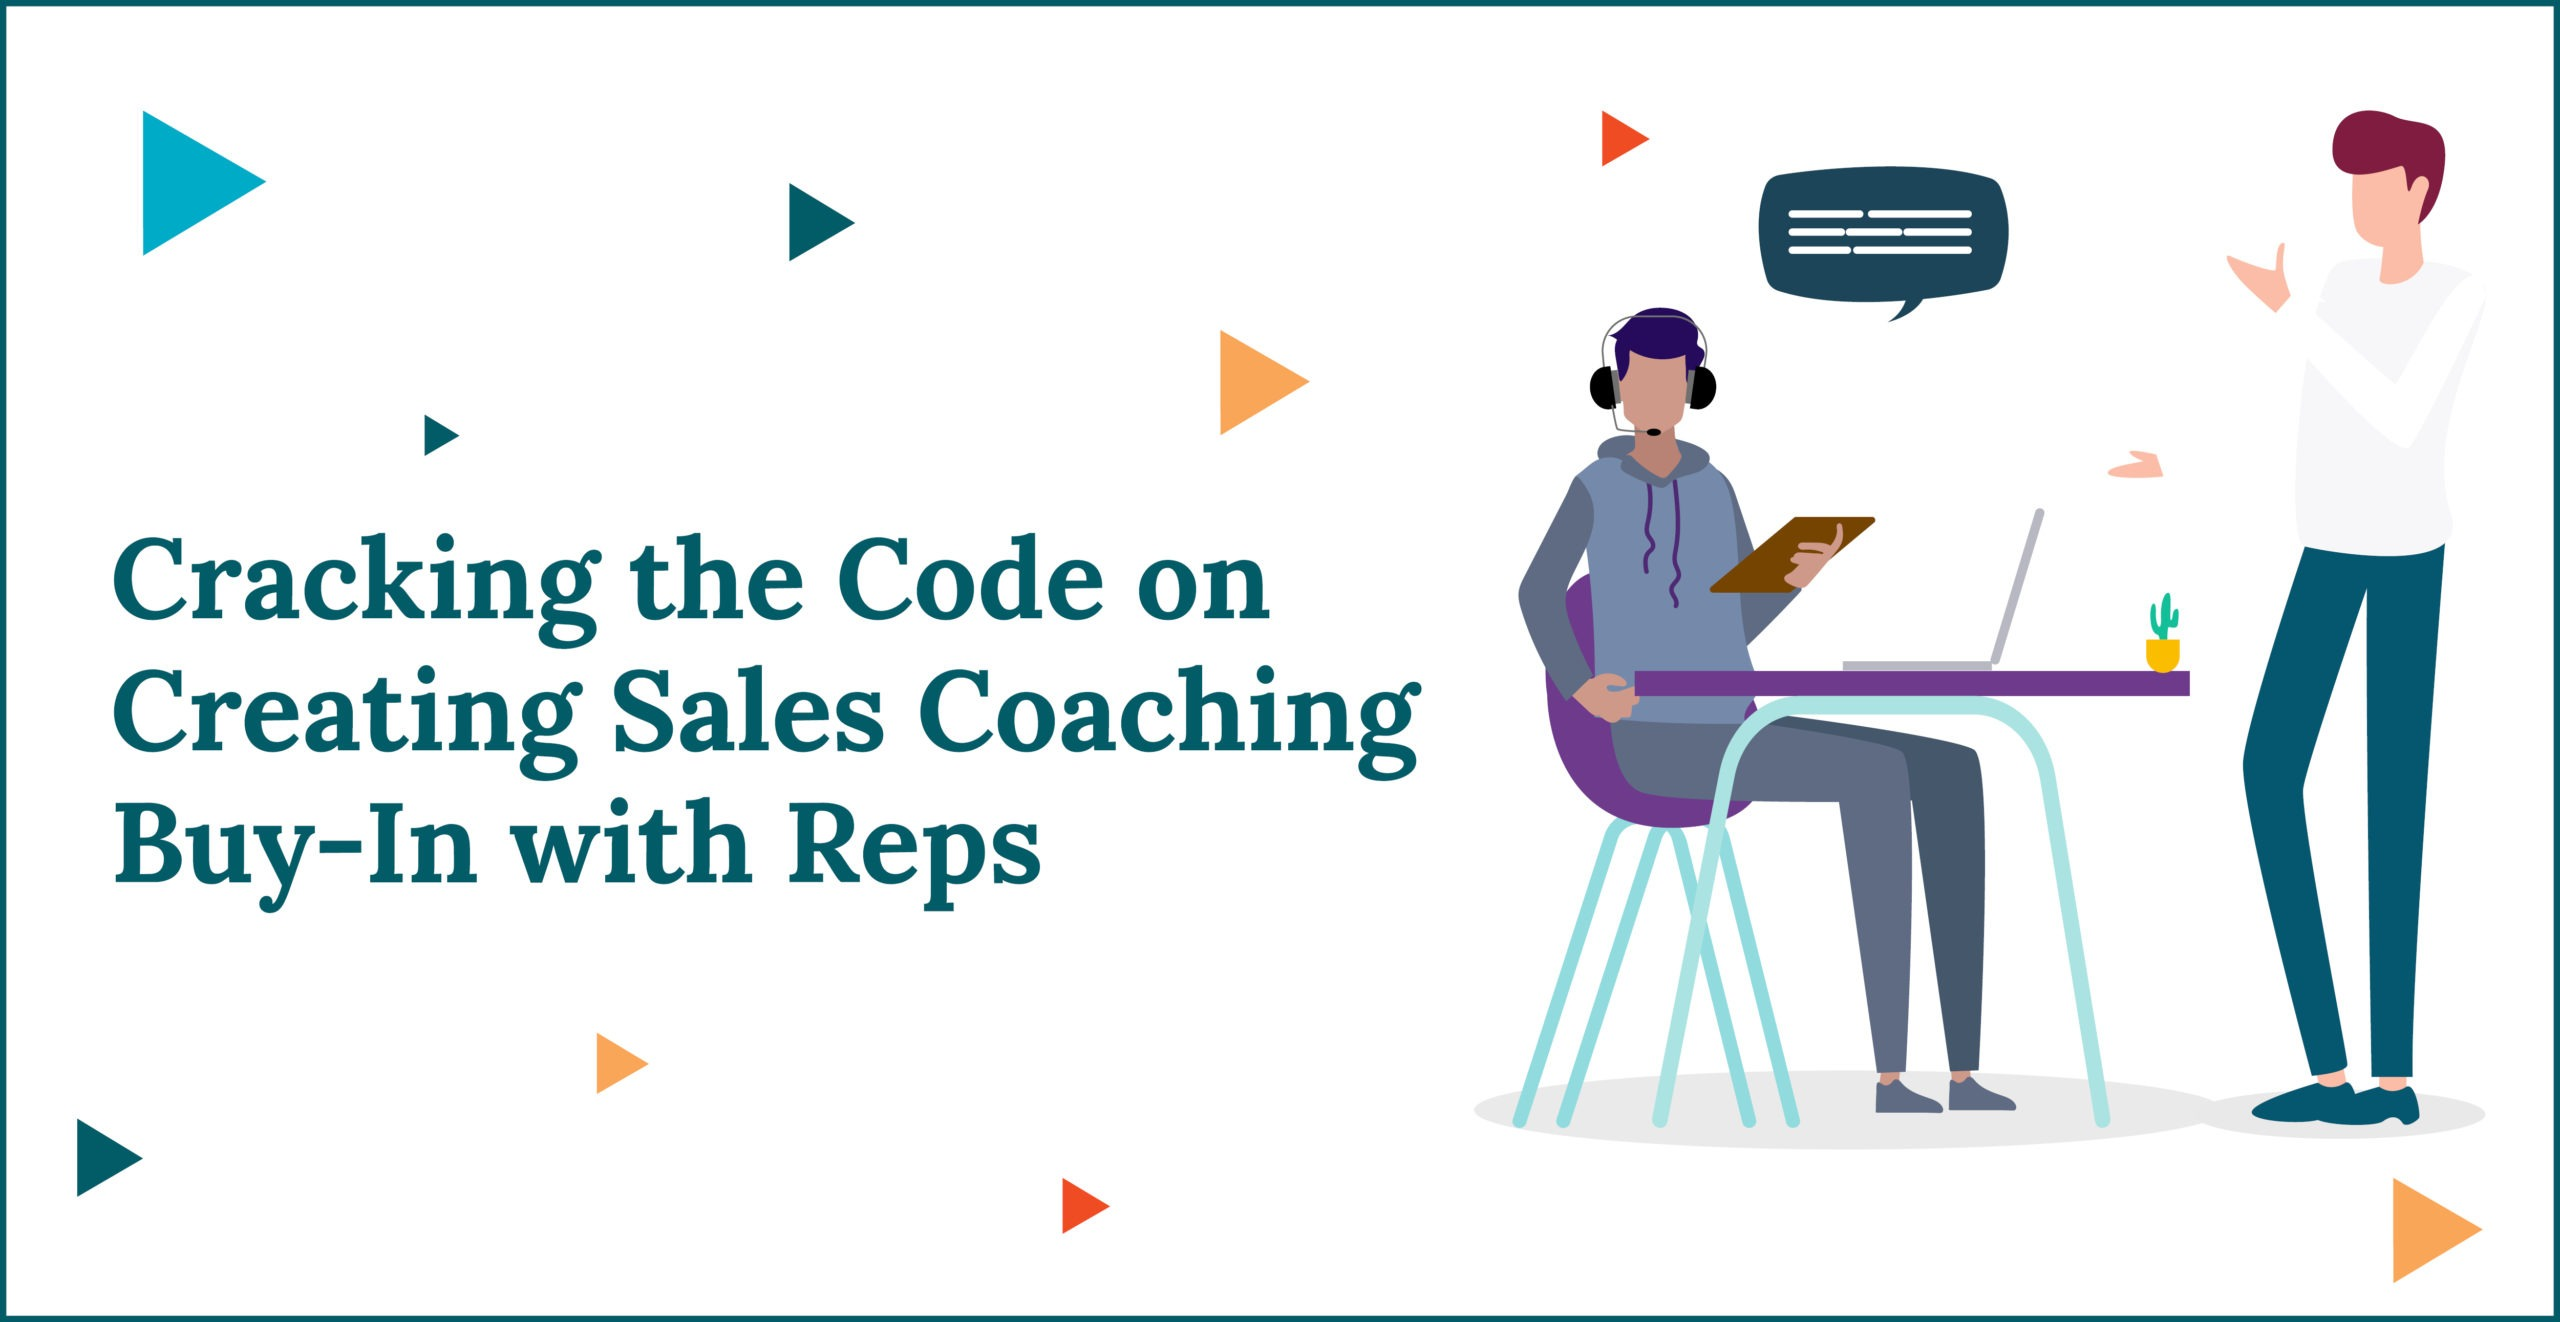 Cracking the Code on Creating Sales Coaching Buy-In with Reps